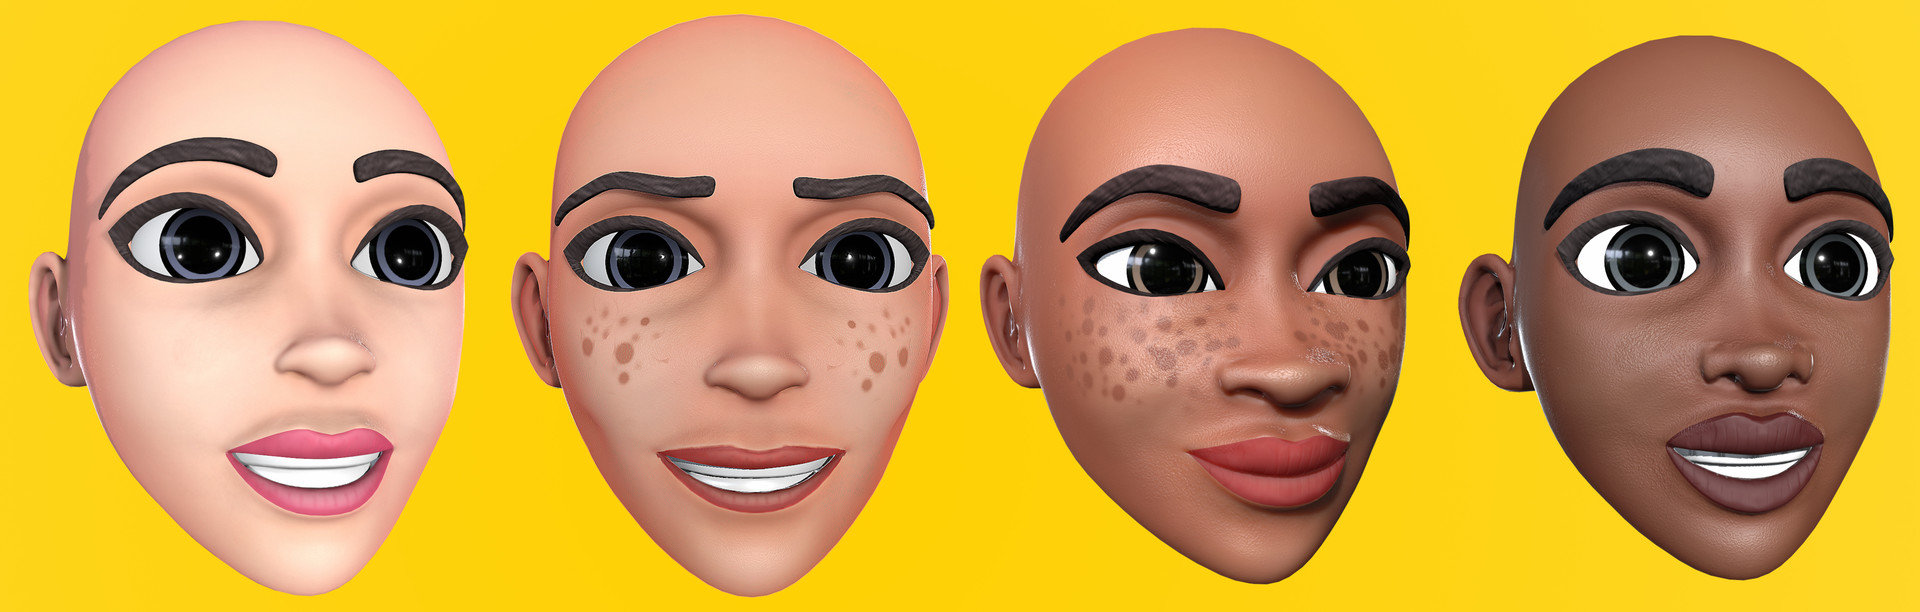 Designed customizable facial features  facial features and changes of different color values in application.